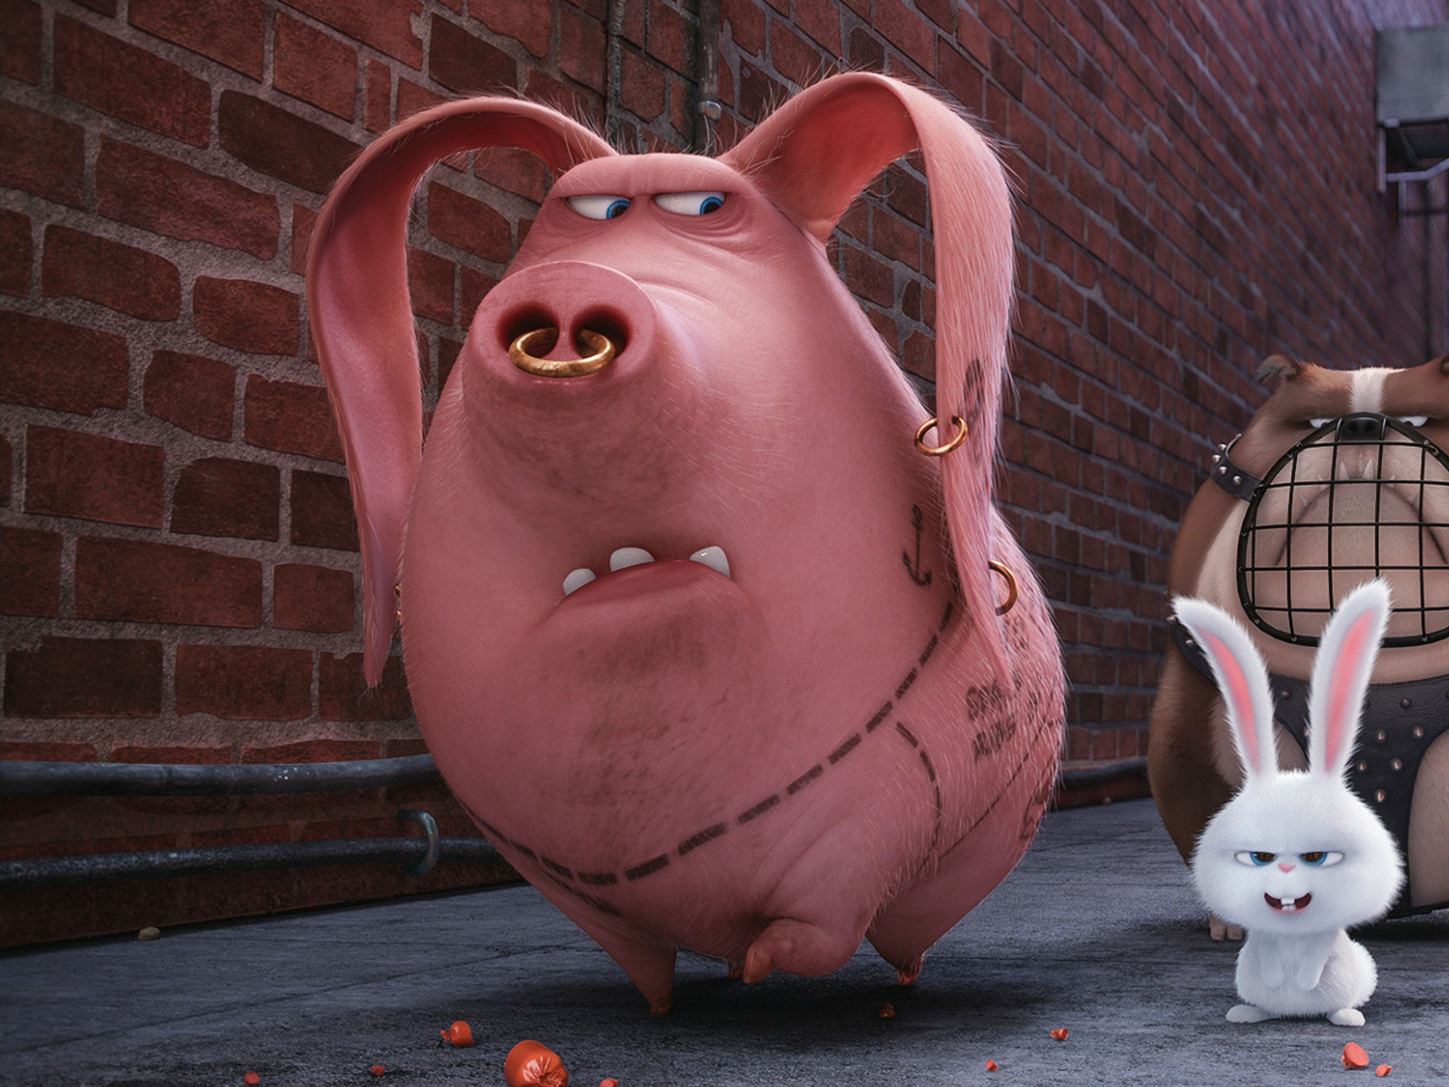 The Secret Life of Pets wasn't lying: People have tattooed pigs for